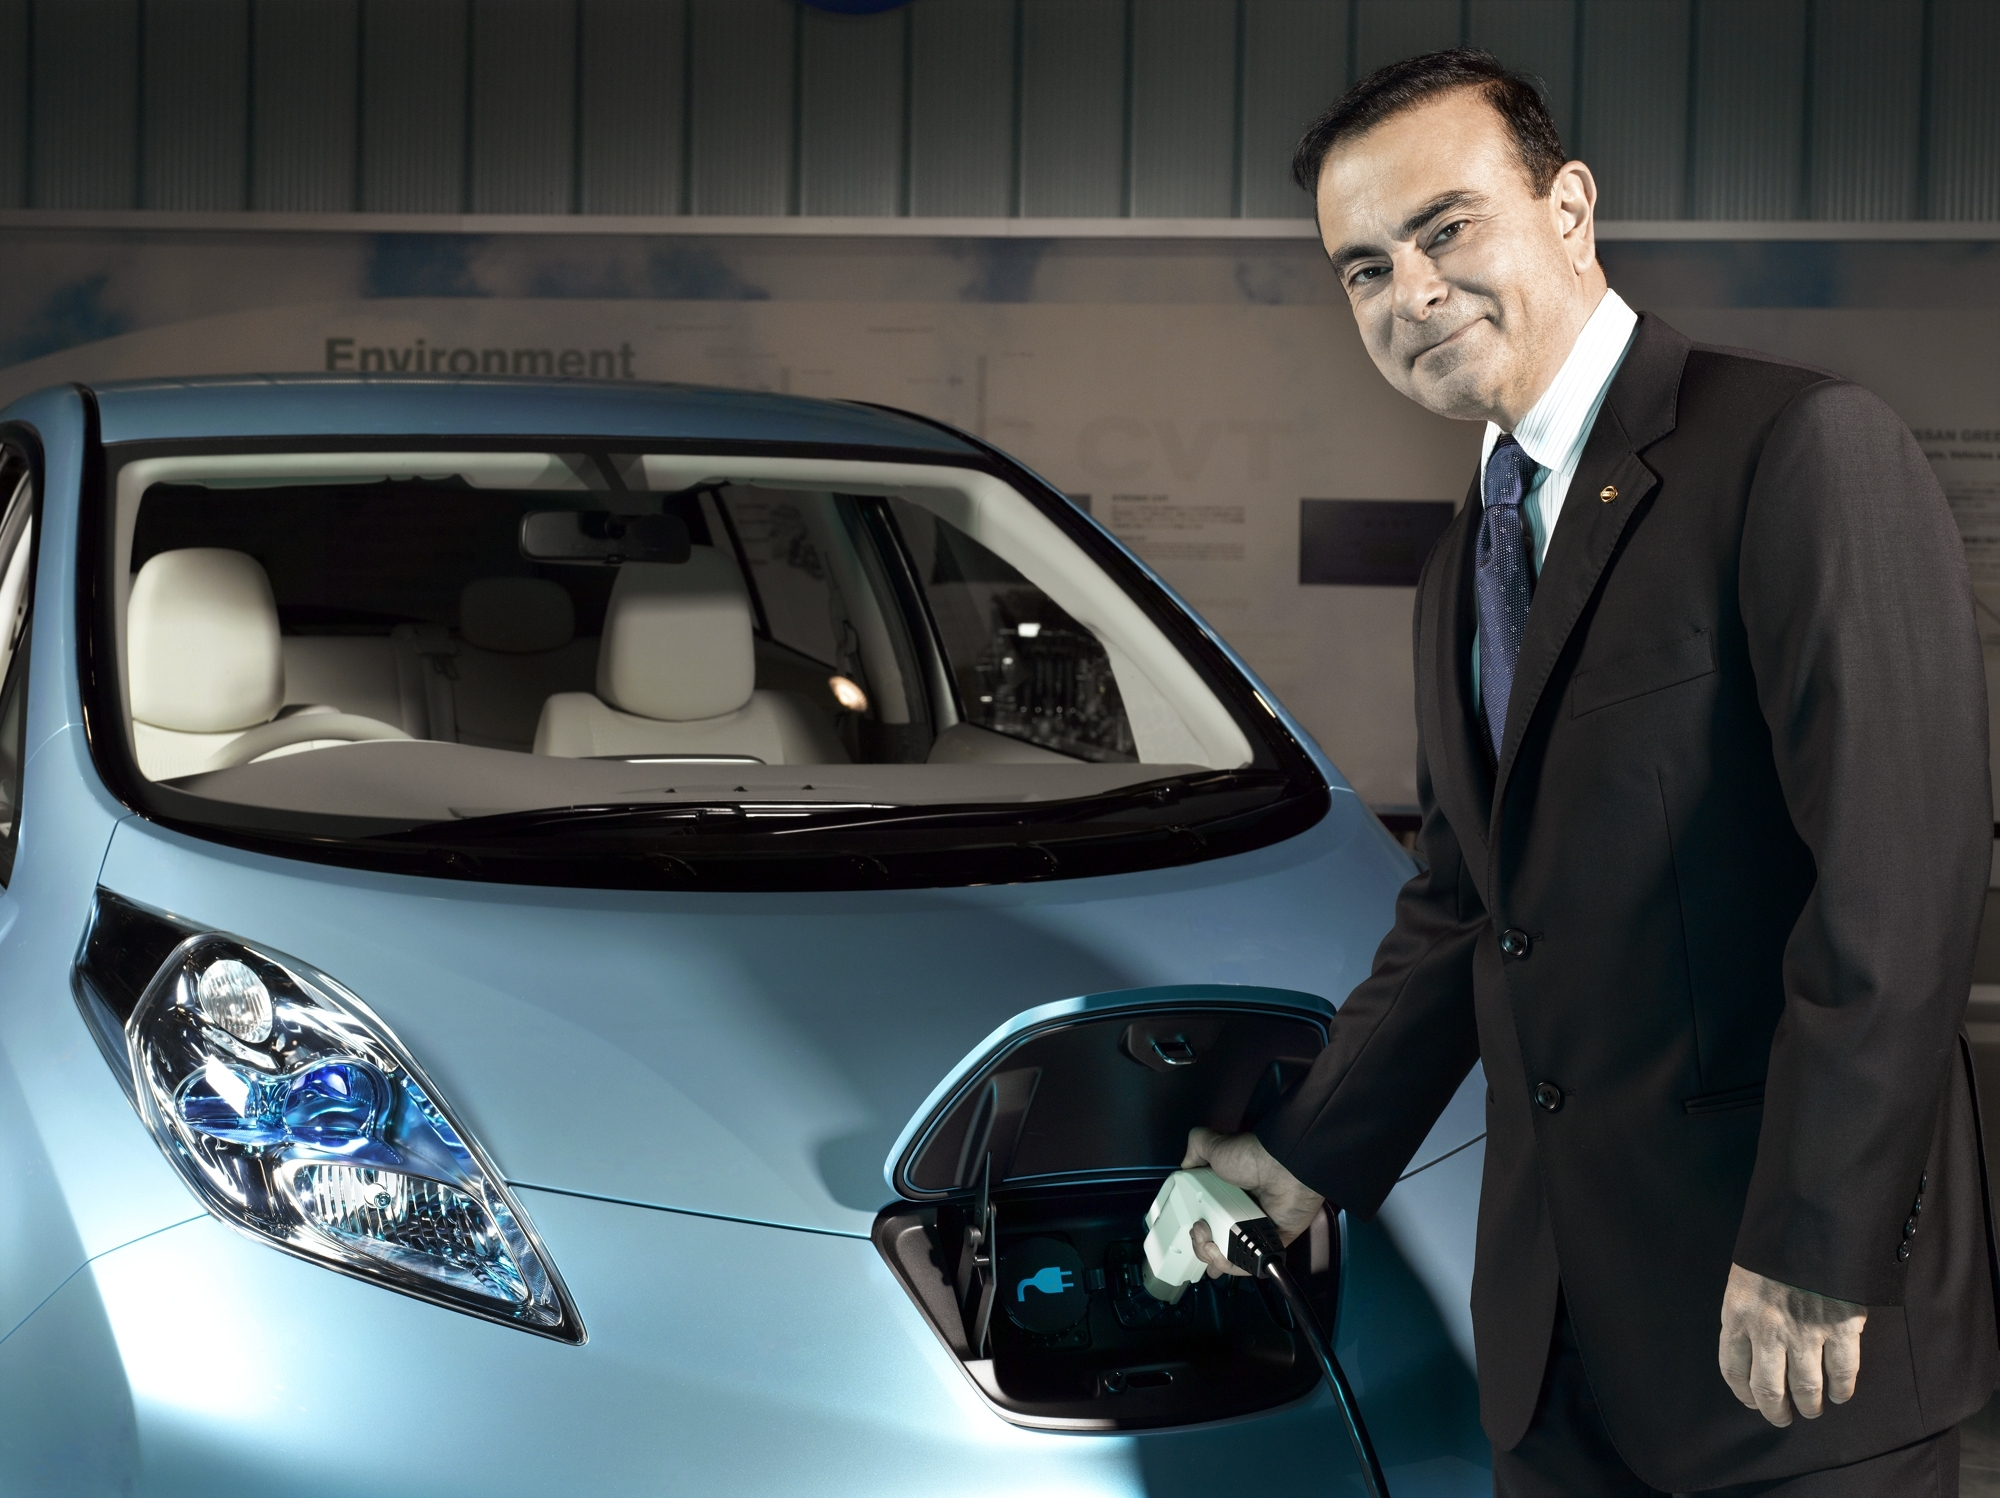 carlos ghosn and the nissan era The global leadership of carlos ghosn at nissan in 1999, the nissan was suffering under a decade of decline and unprofitability, in fact the company was on the verge of bankruptcy, with continuous loses for the past eight years resulting in debts of approx $22 billion.